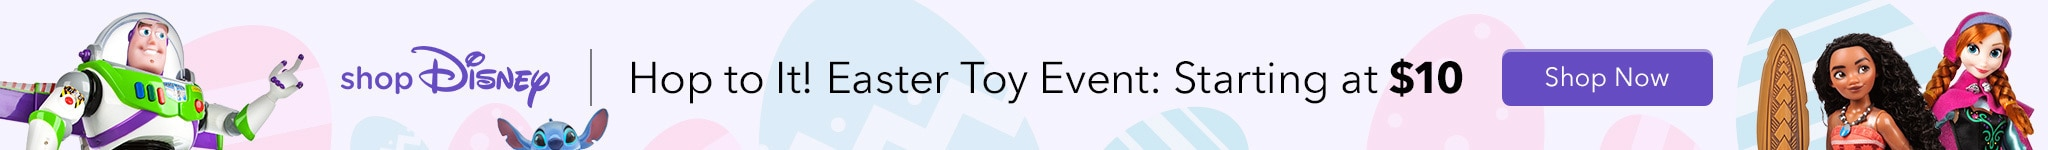 shopDisney Hop to It! Easter Toy Event: Starting at $10